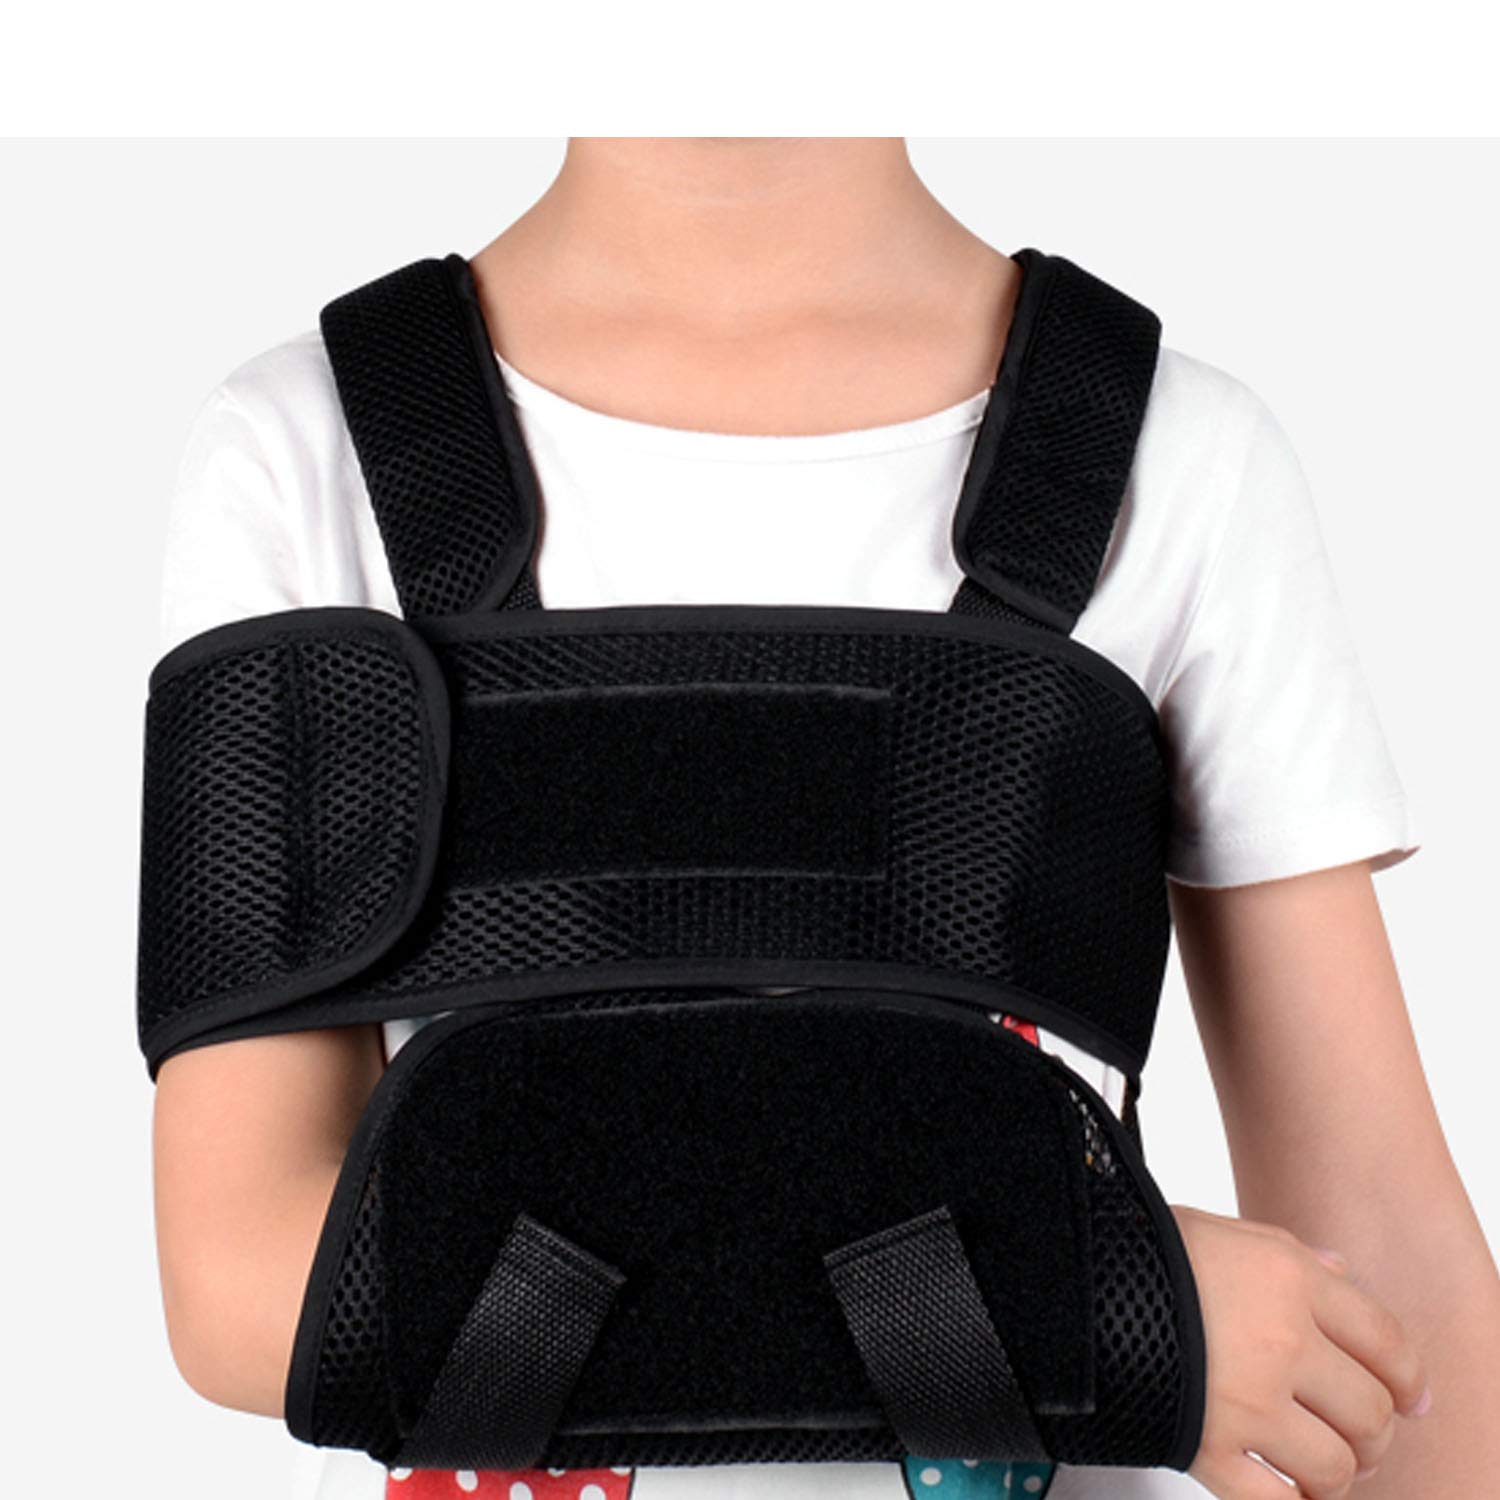 iiHome Medical Arm Sling,  Arm Immobilizer Sling, Maximum Comfort, Best Fully Adjustable Rotator Cuff and Elbow Support for Broken&Fractured Arm, Includes Immobilizer Band for Quick Recovery (Child) by iiHOME